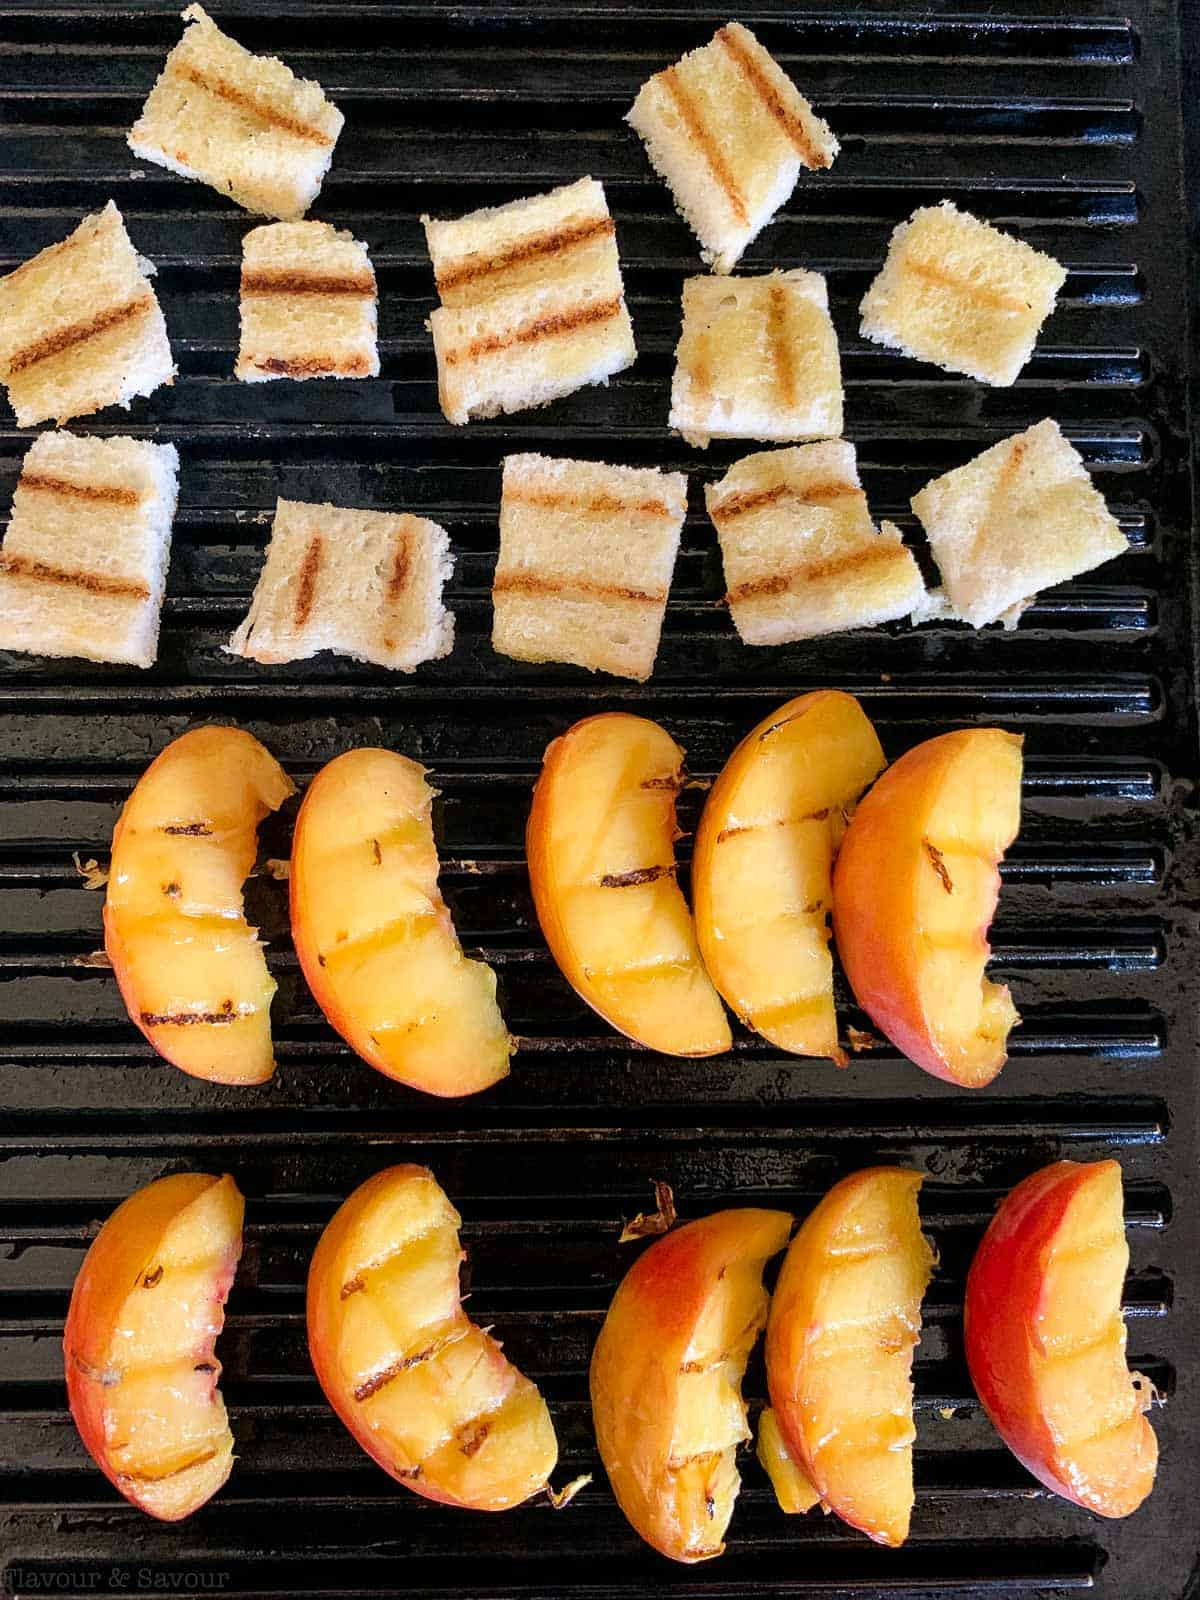 Grilling peaches and croutons